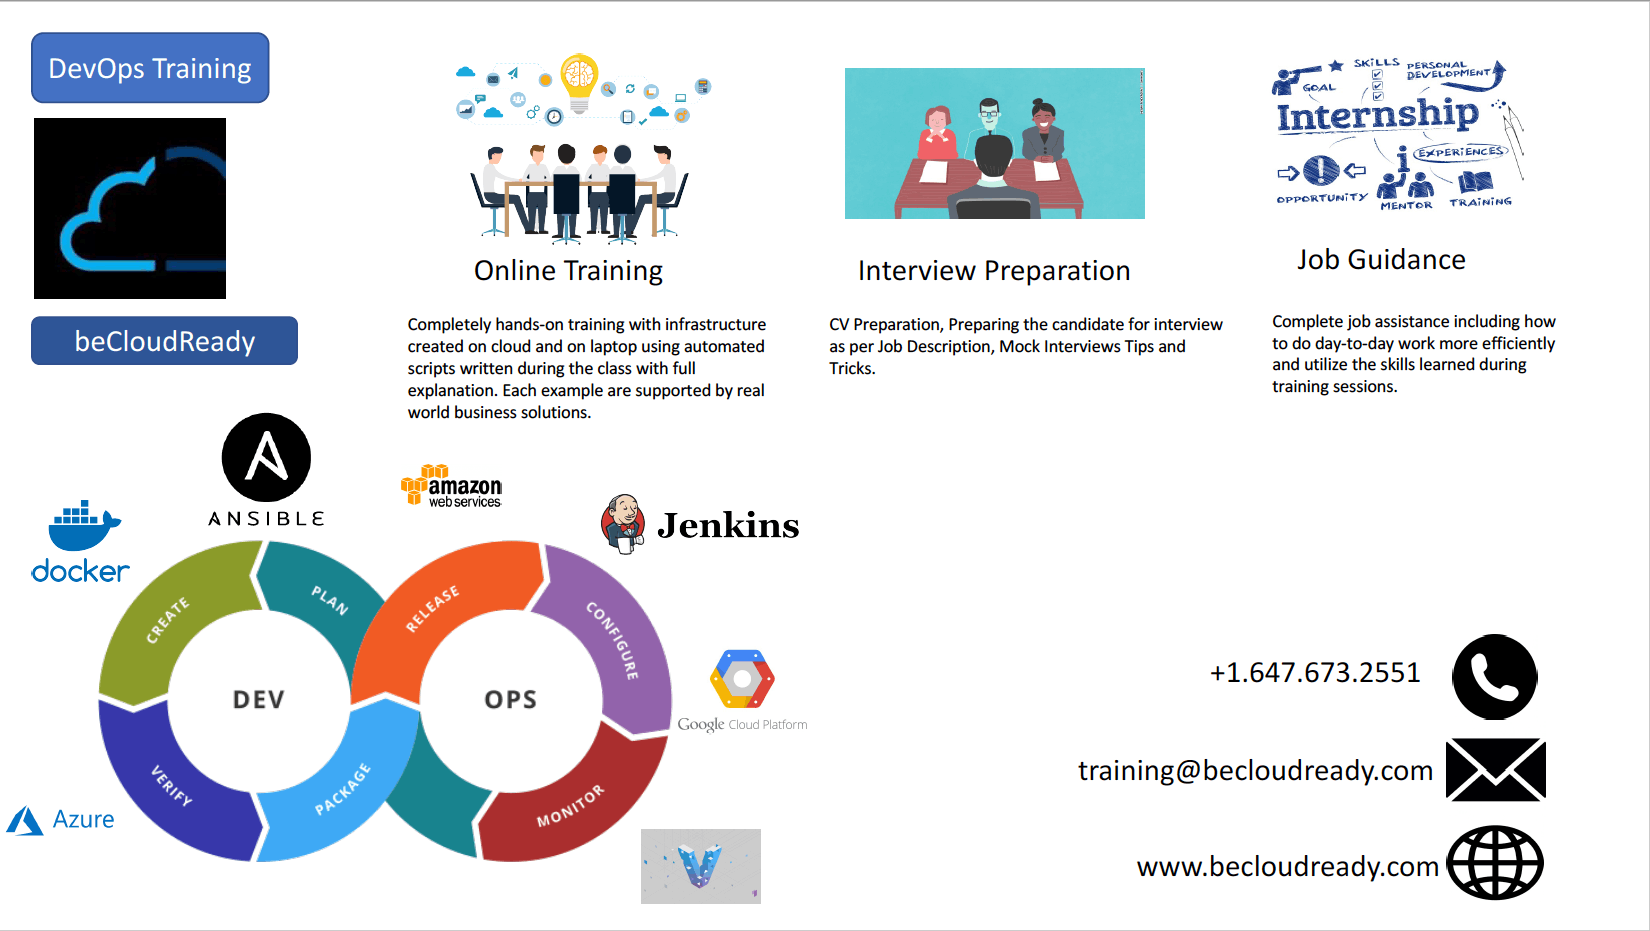 DevOps training AnsiblePythonJenkins AWS Cloud Azure Docker -Ahmedabad India